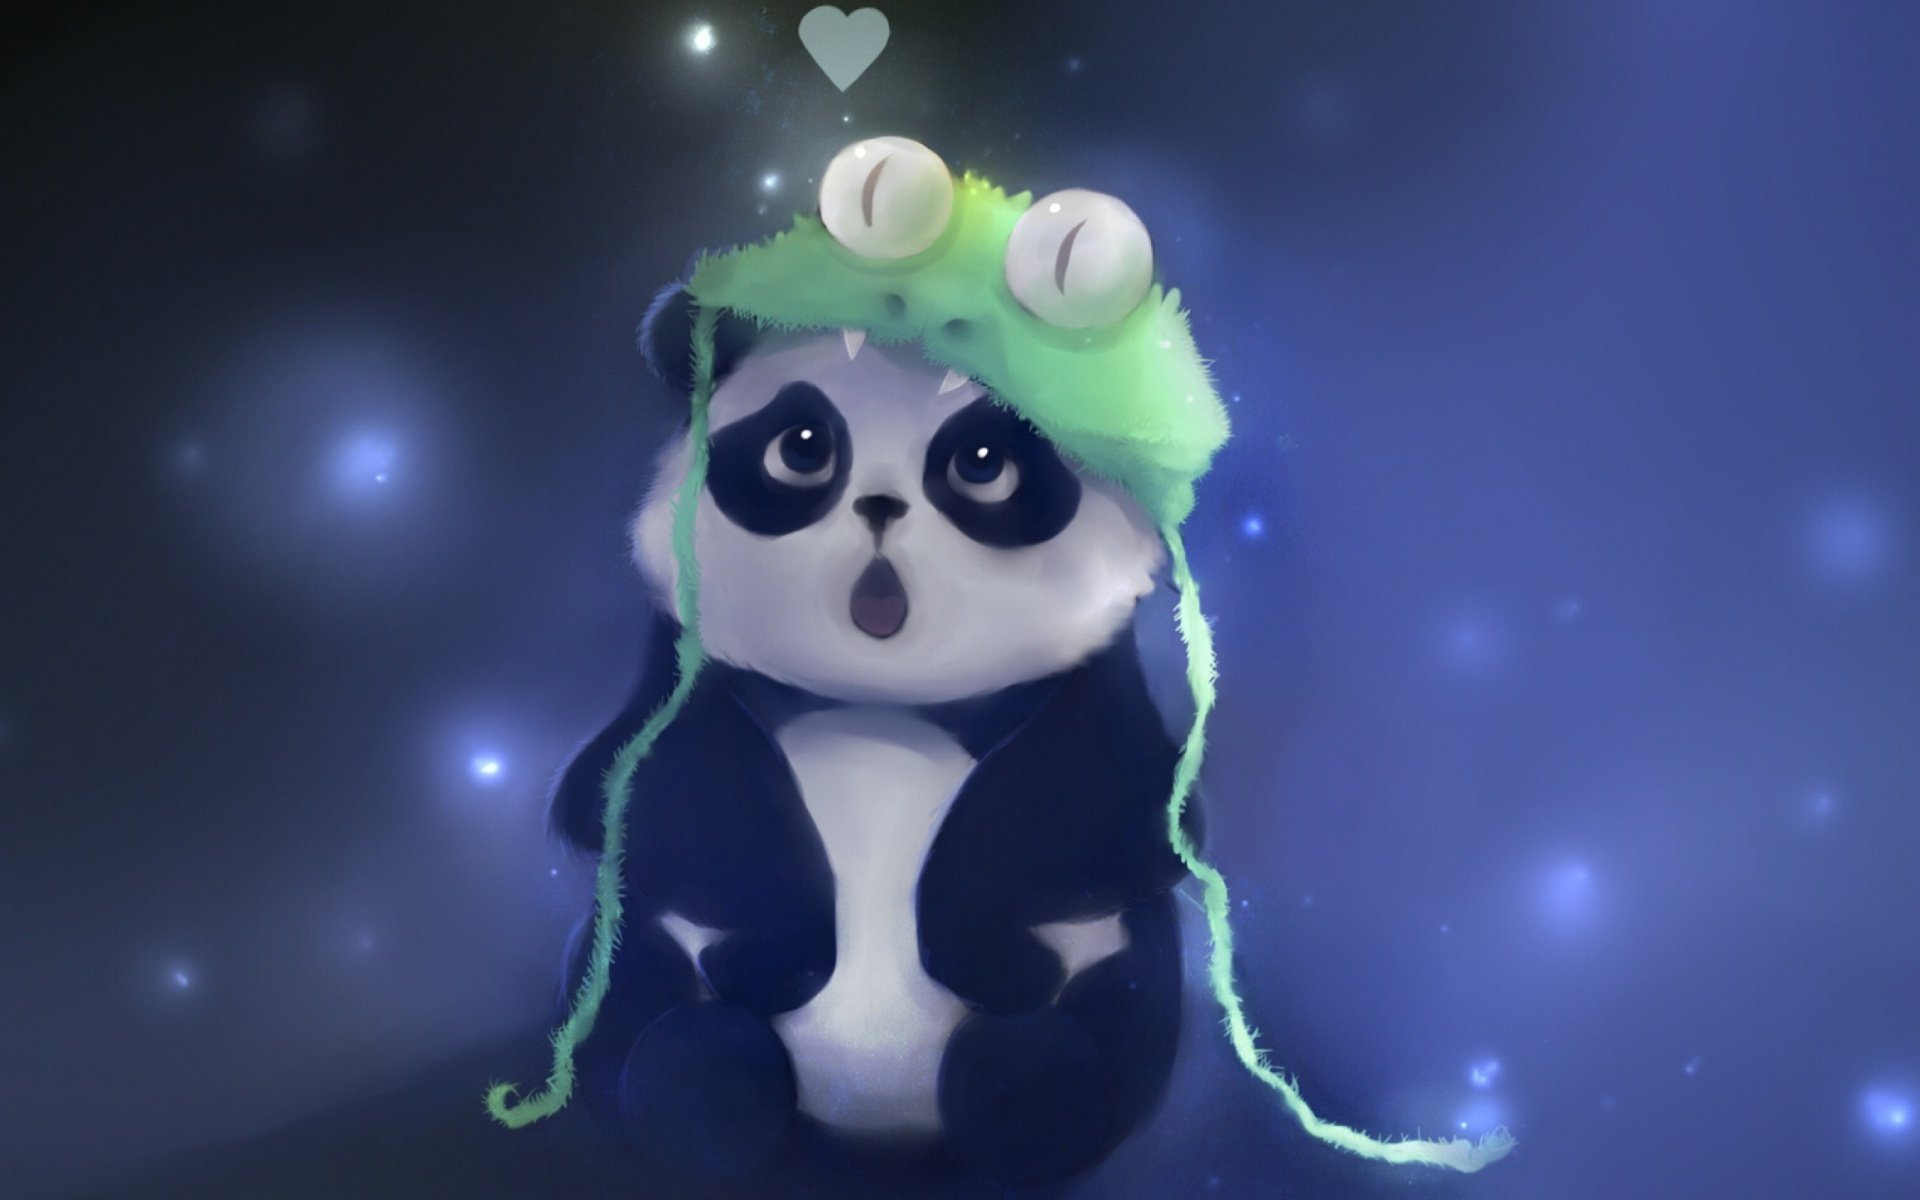 Panda Bear Cute Animal Picture Wallpaper Deskt #1386 Wallpaper ...